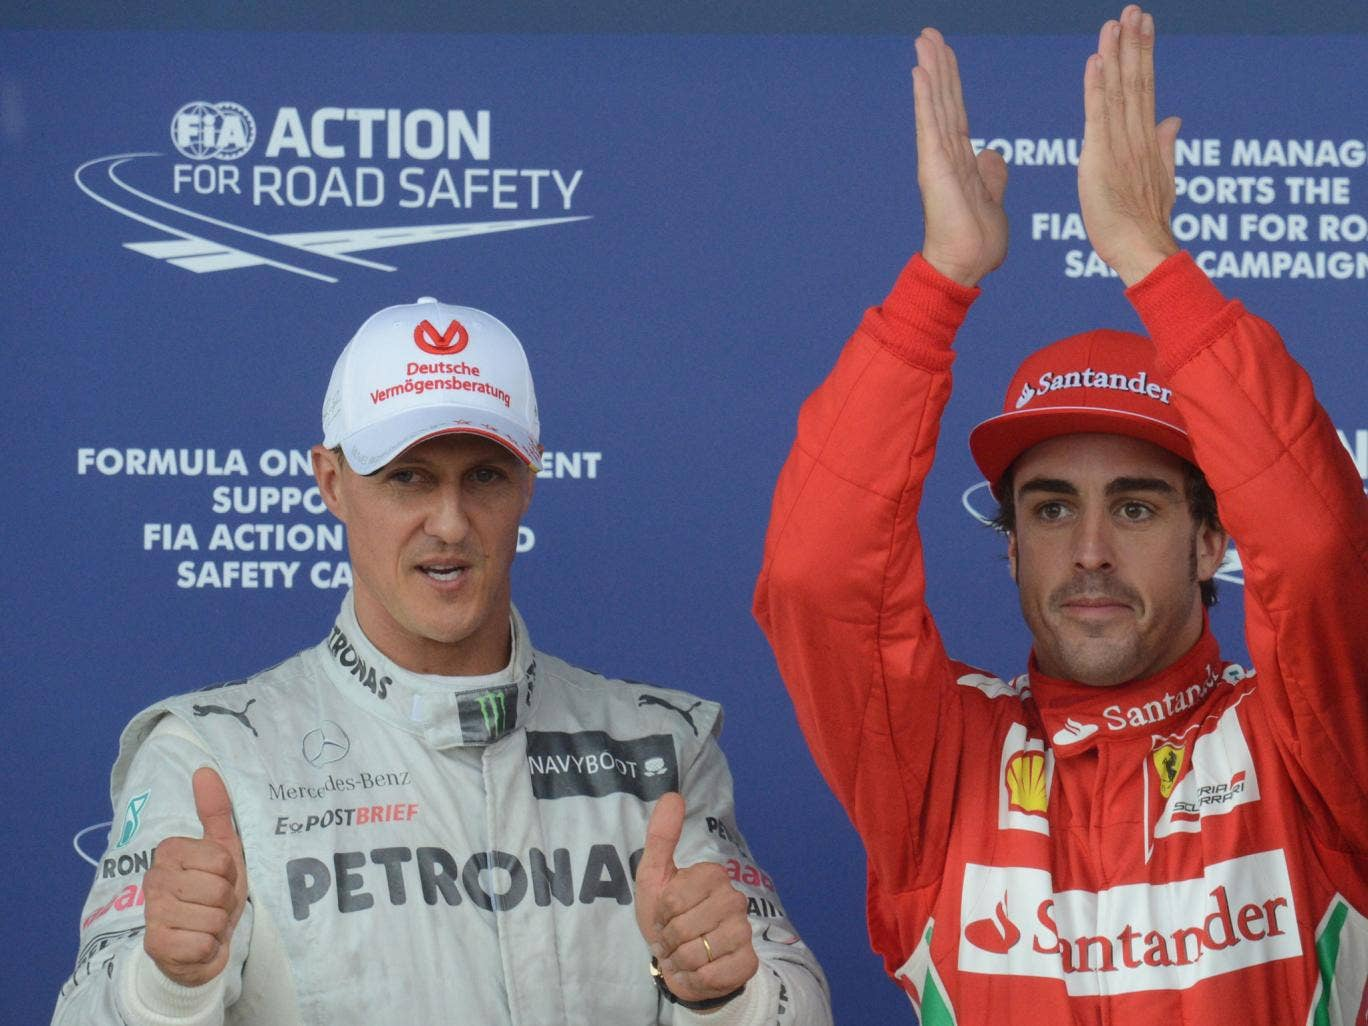 Michael Schumacher and Fernando Alonso pose together